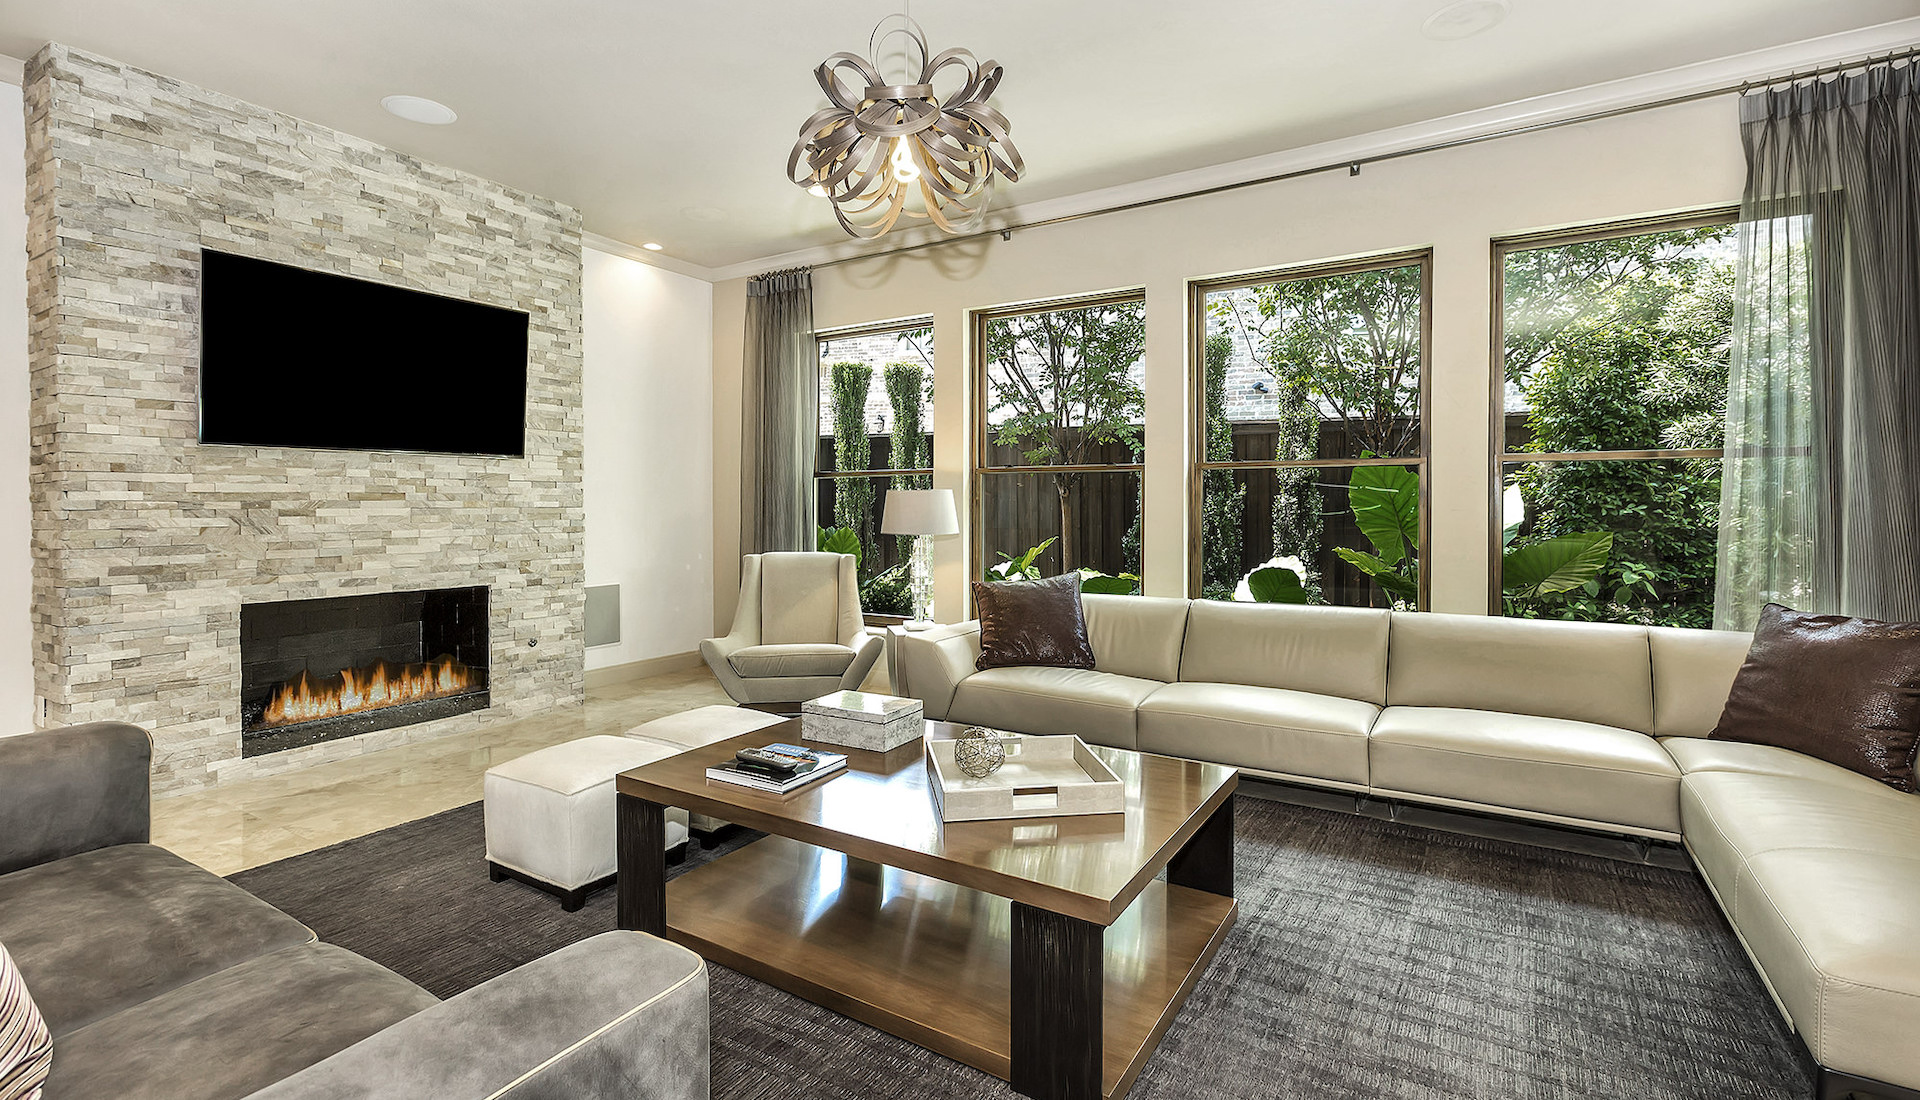 North Dallas Living Room Featured Photo 1920x1100